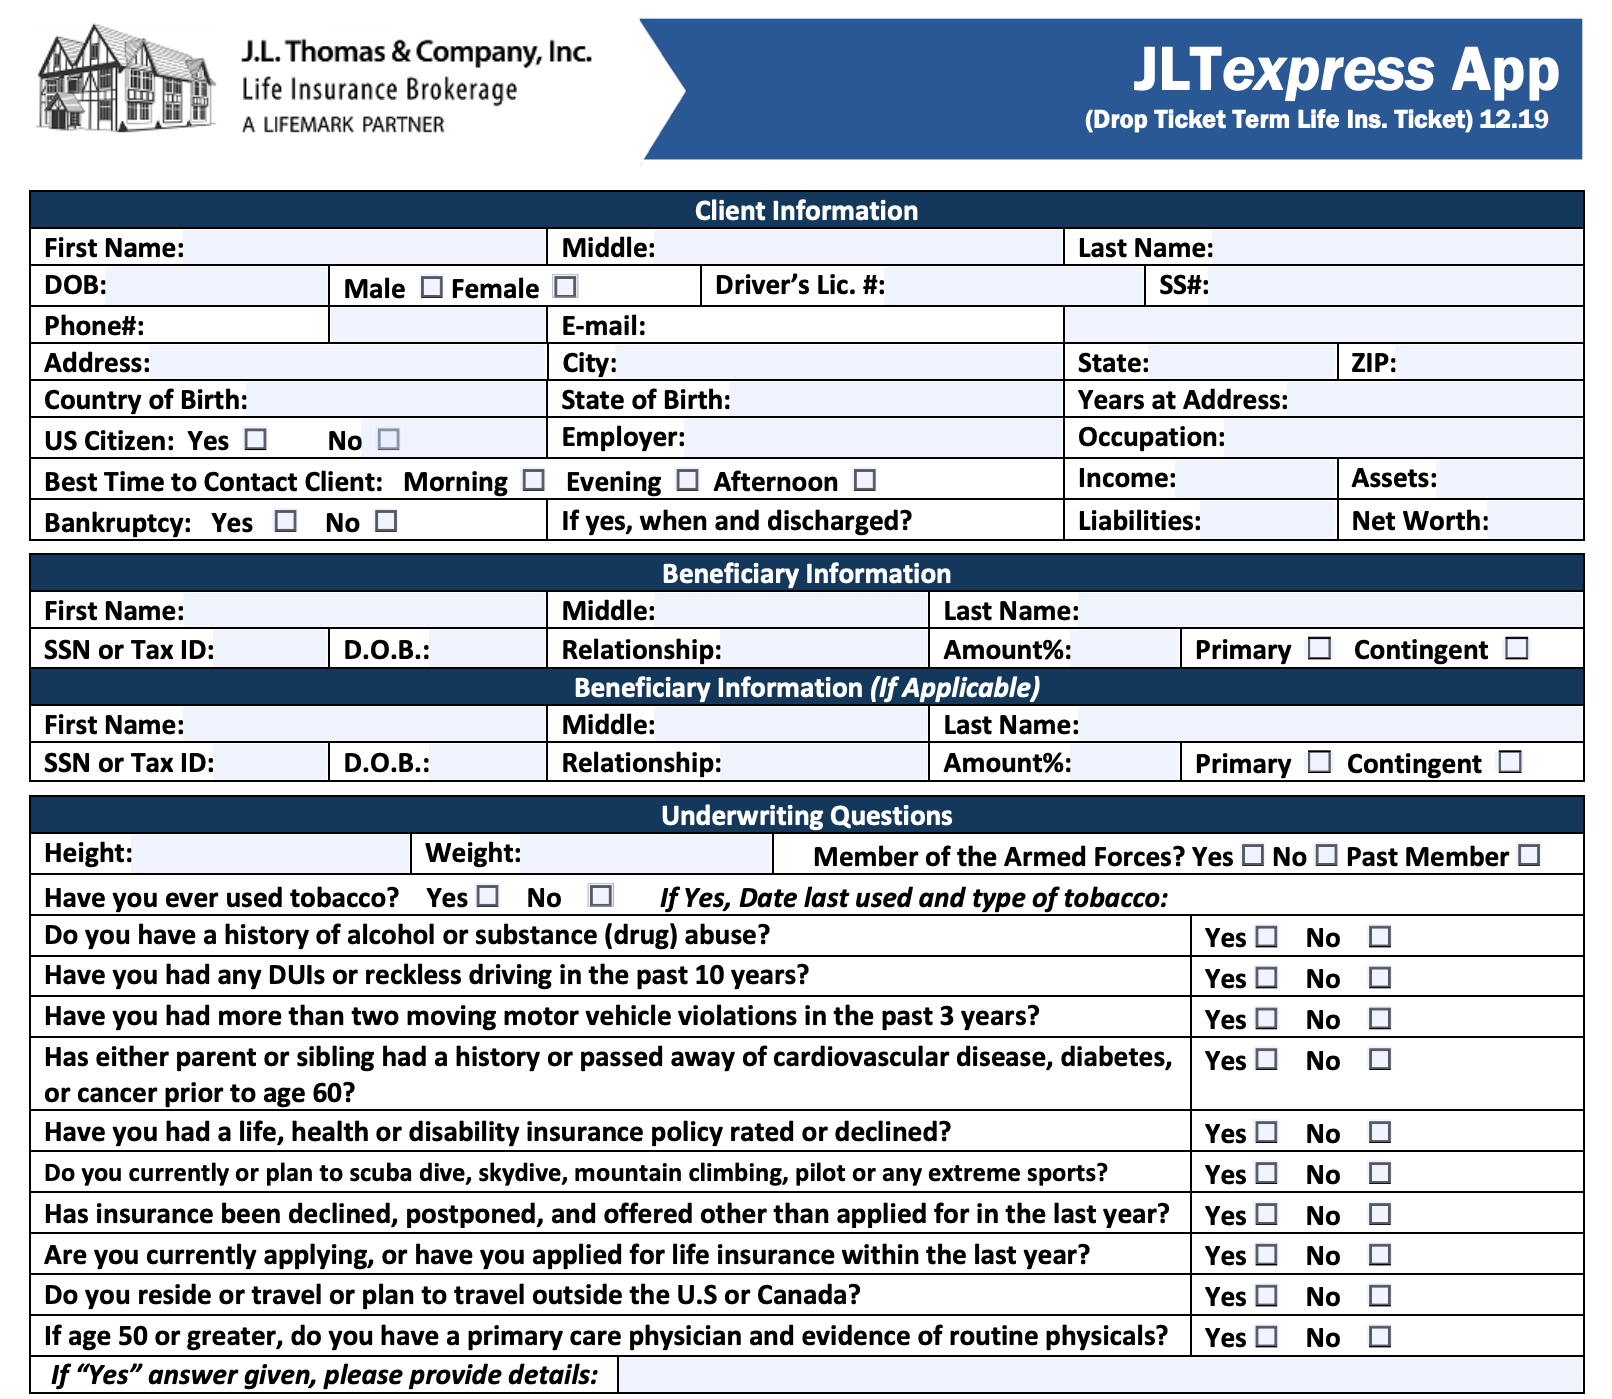 Image of JLTexpress app is a 2 page abbreviated application used to apply for term life insurance.